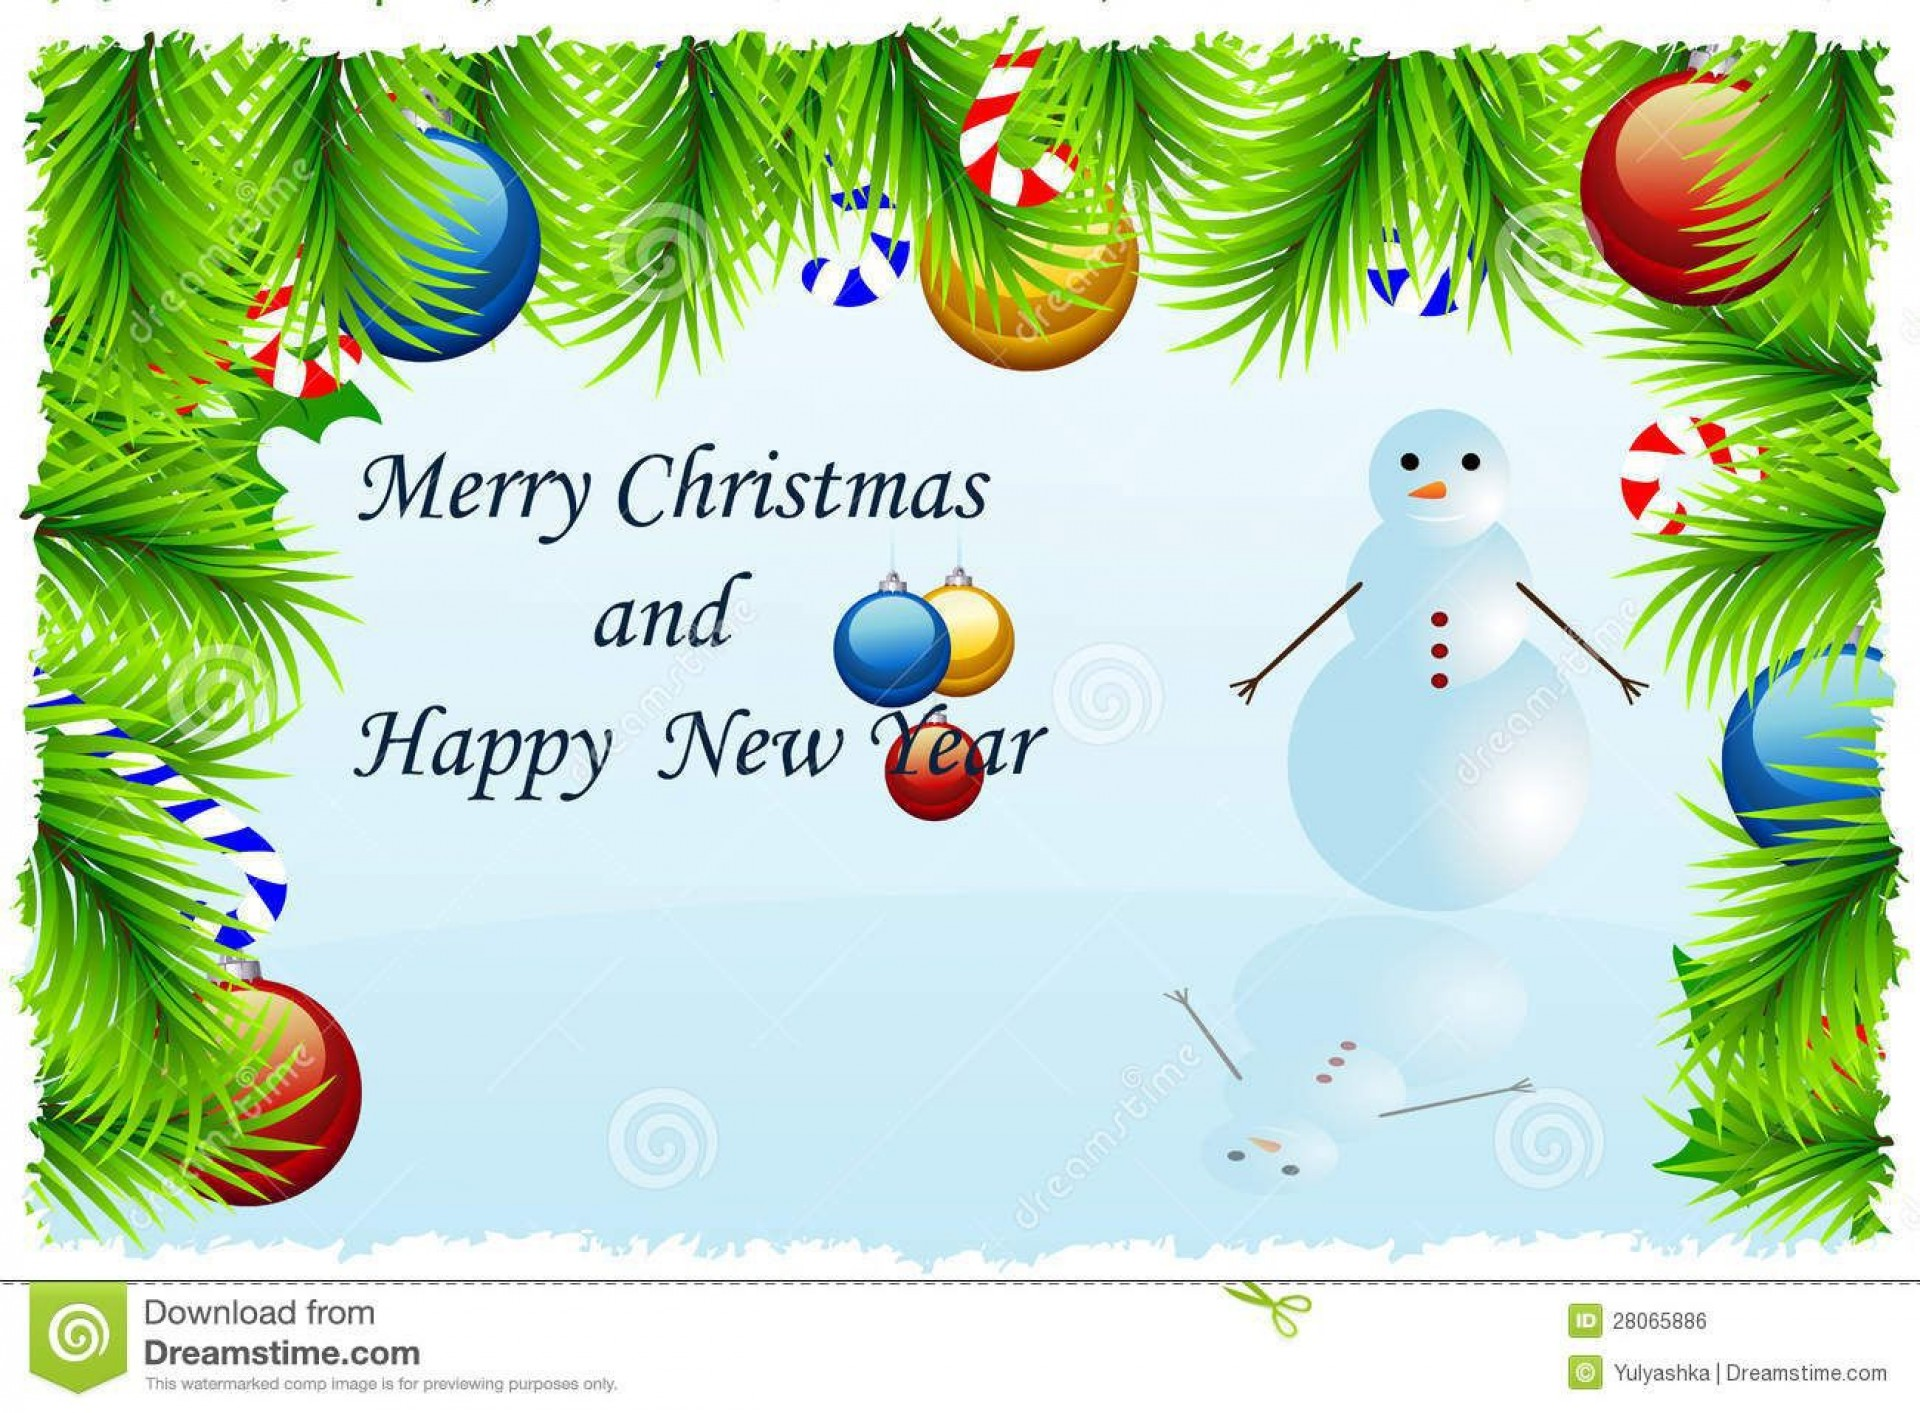 002 Fearsome Christma Card Template Free Download Inspiration  Photo Xma Place1920